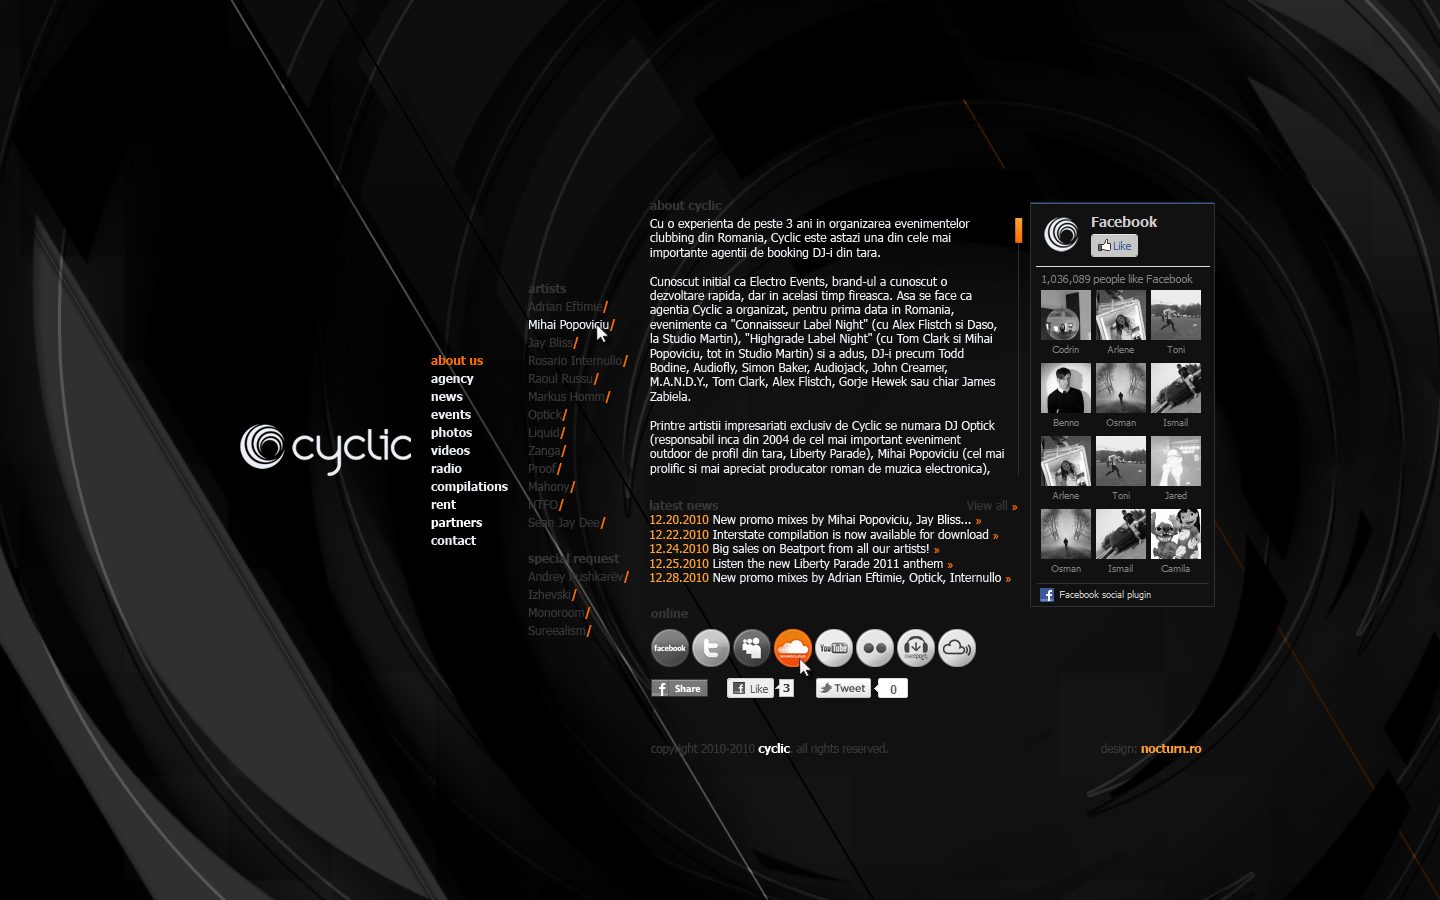 cyclic web design website - Home Design Site